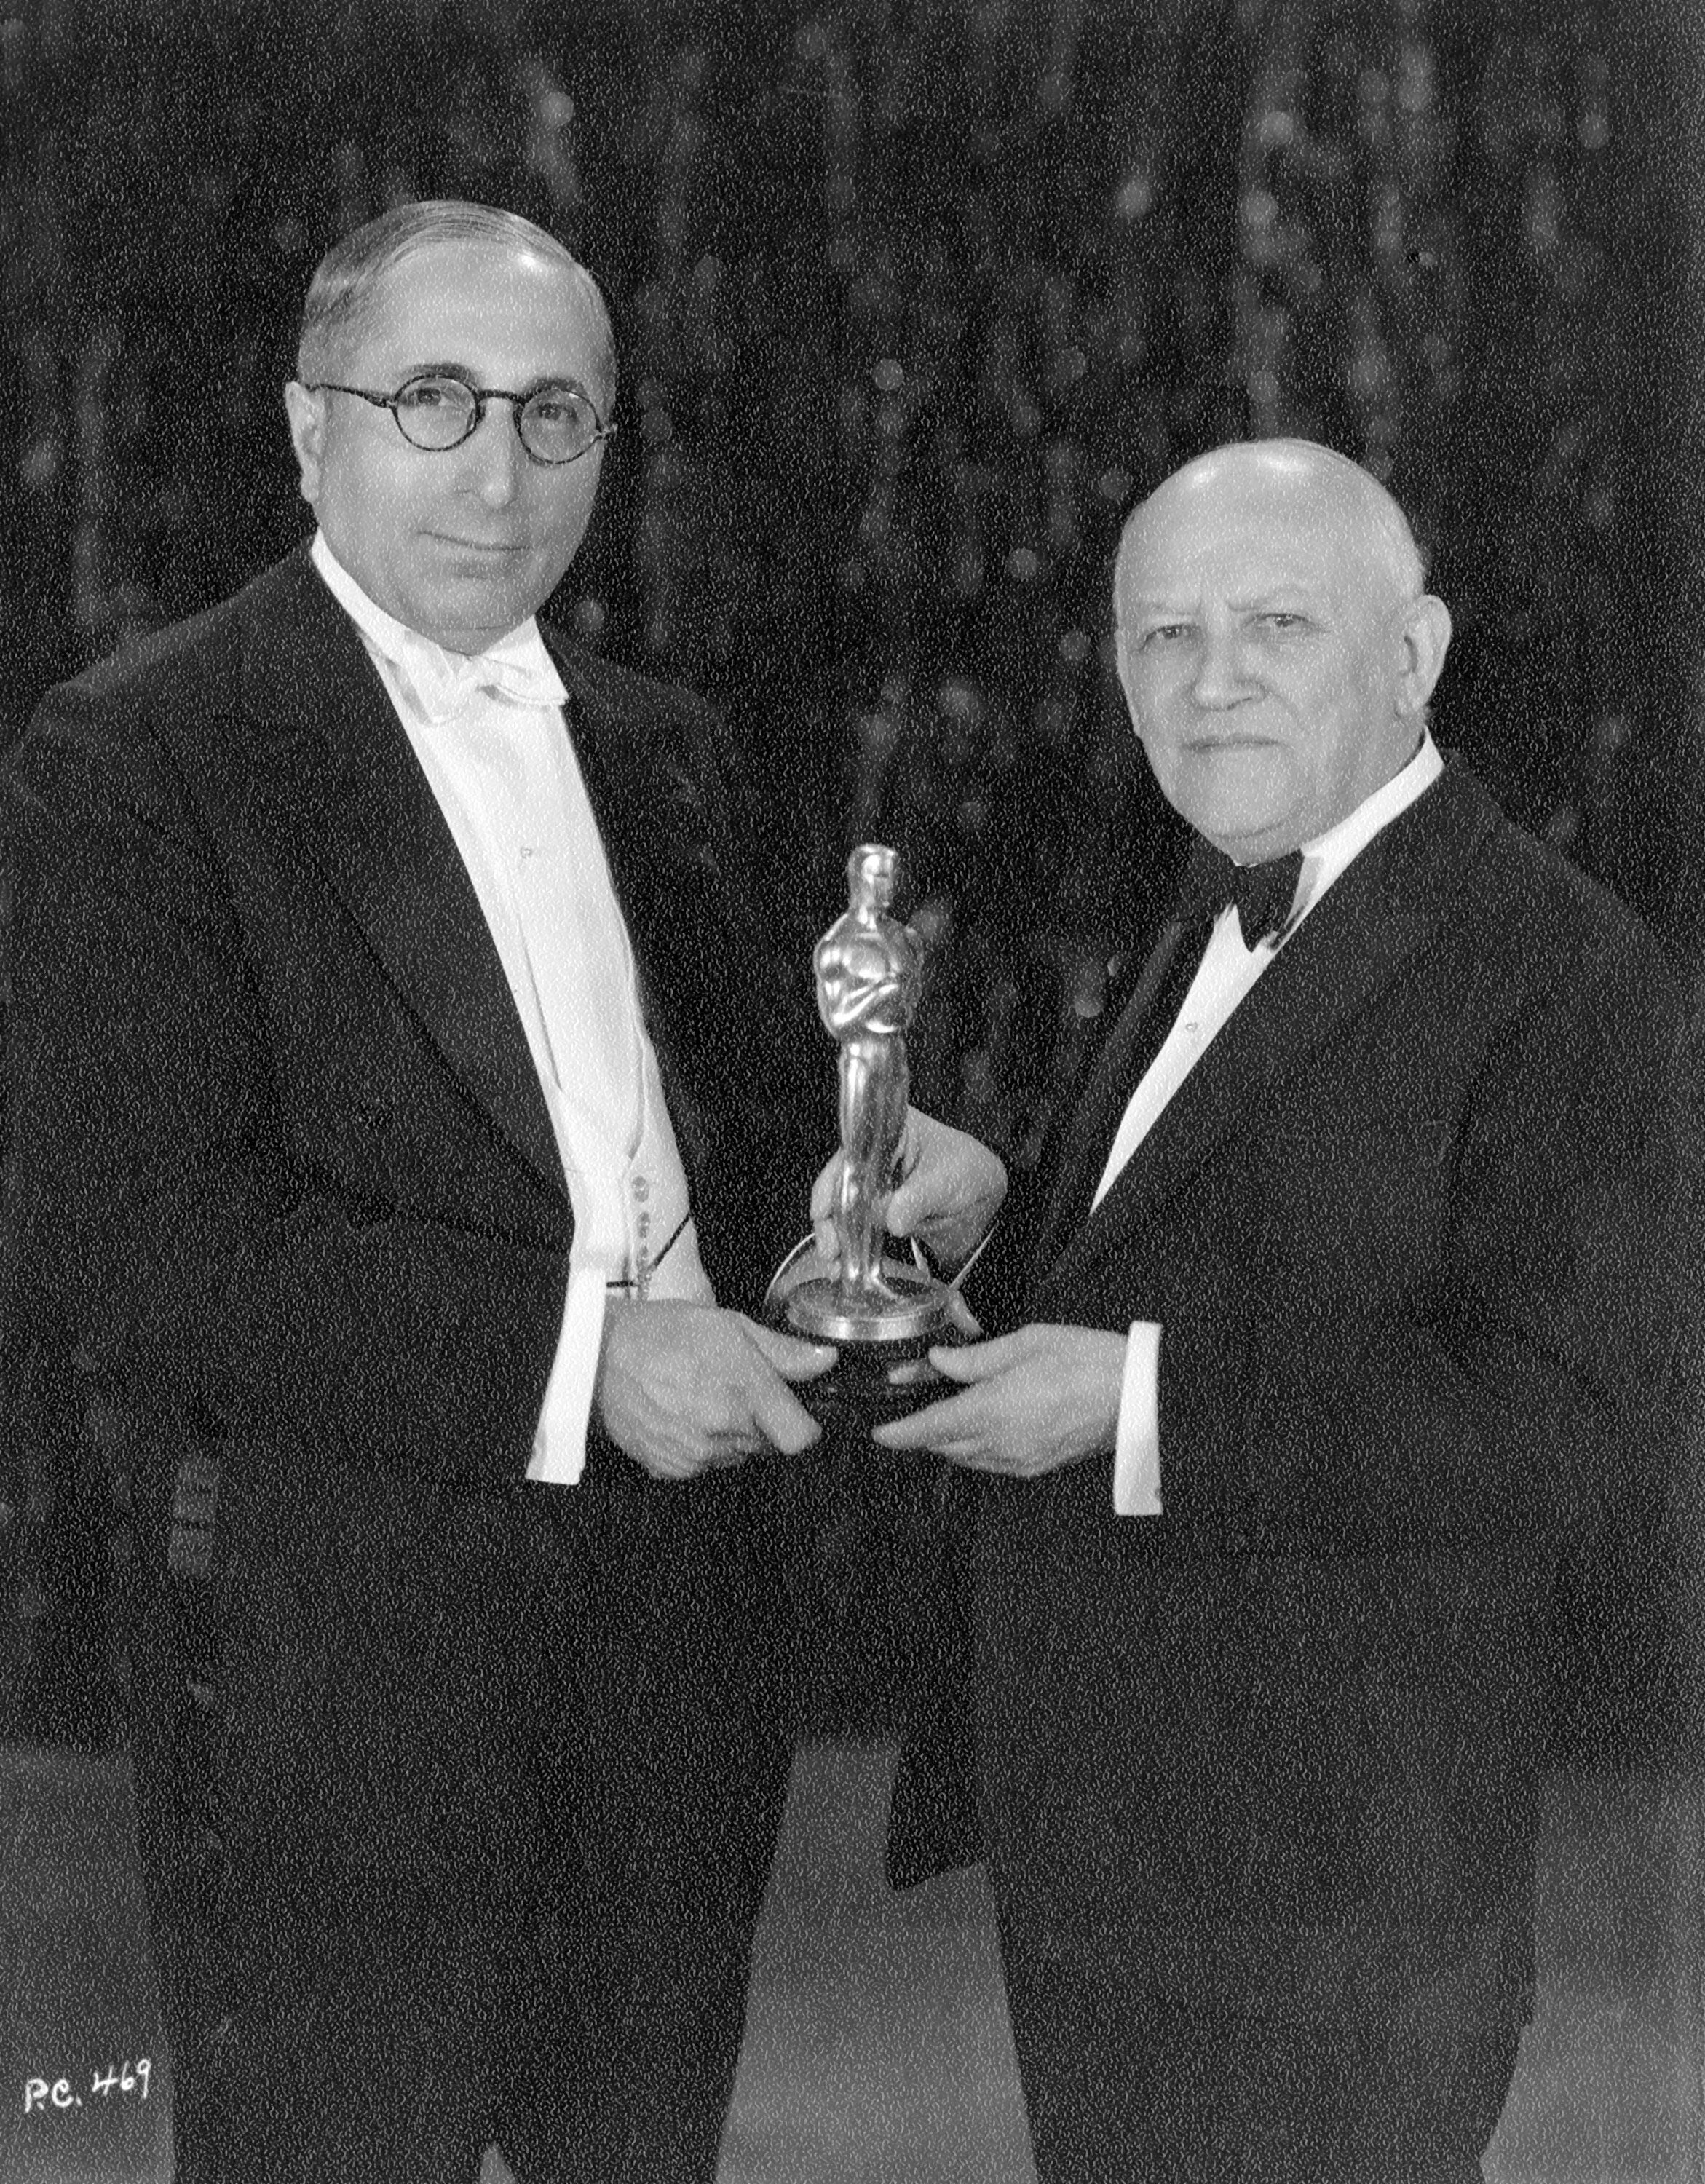 Carl Laemmle, Louis B. Mayer